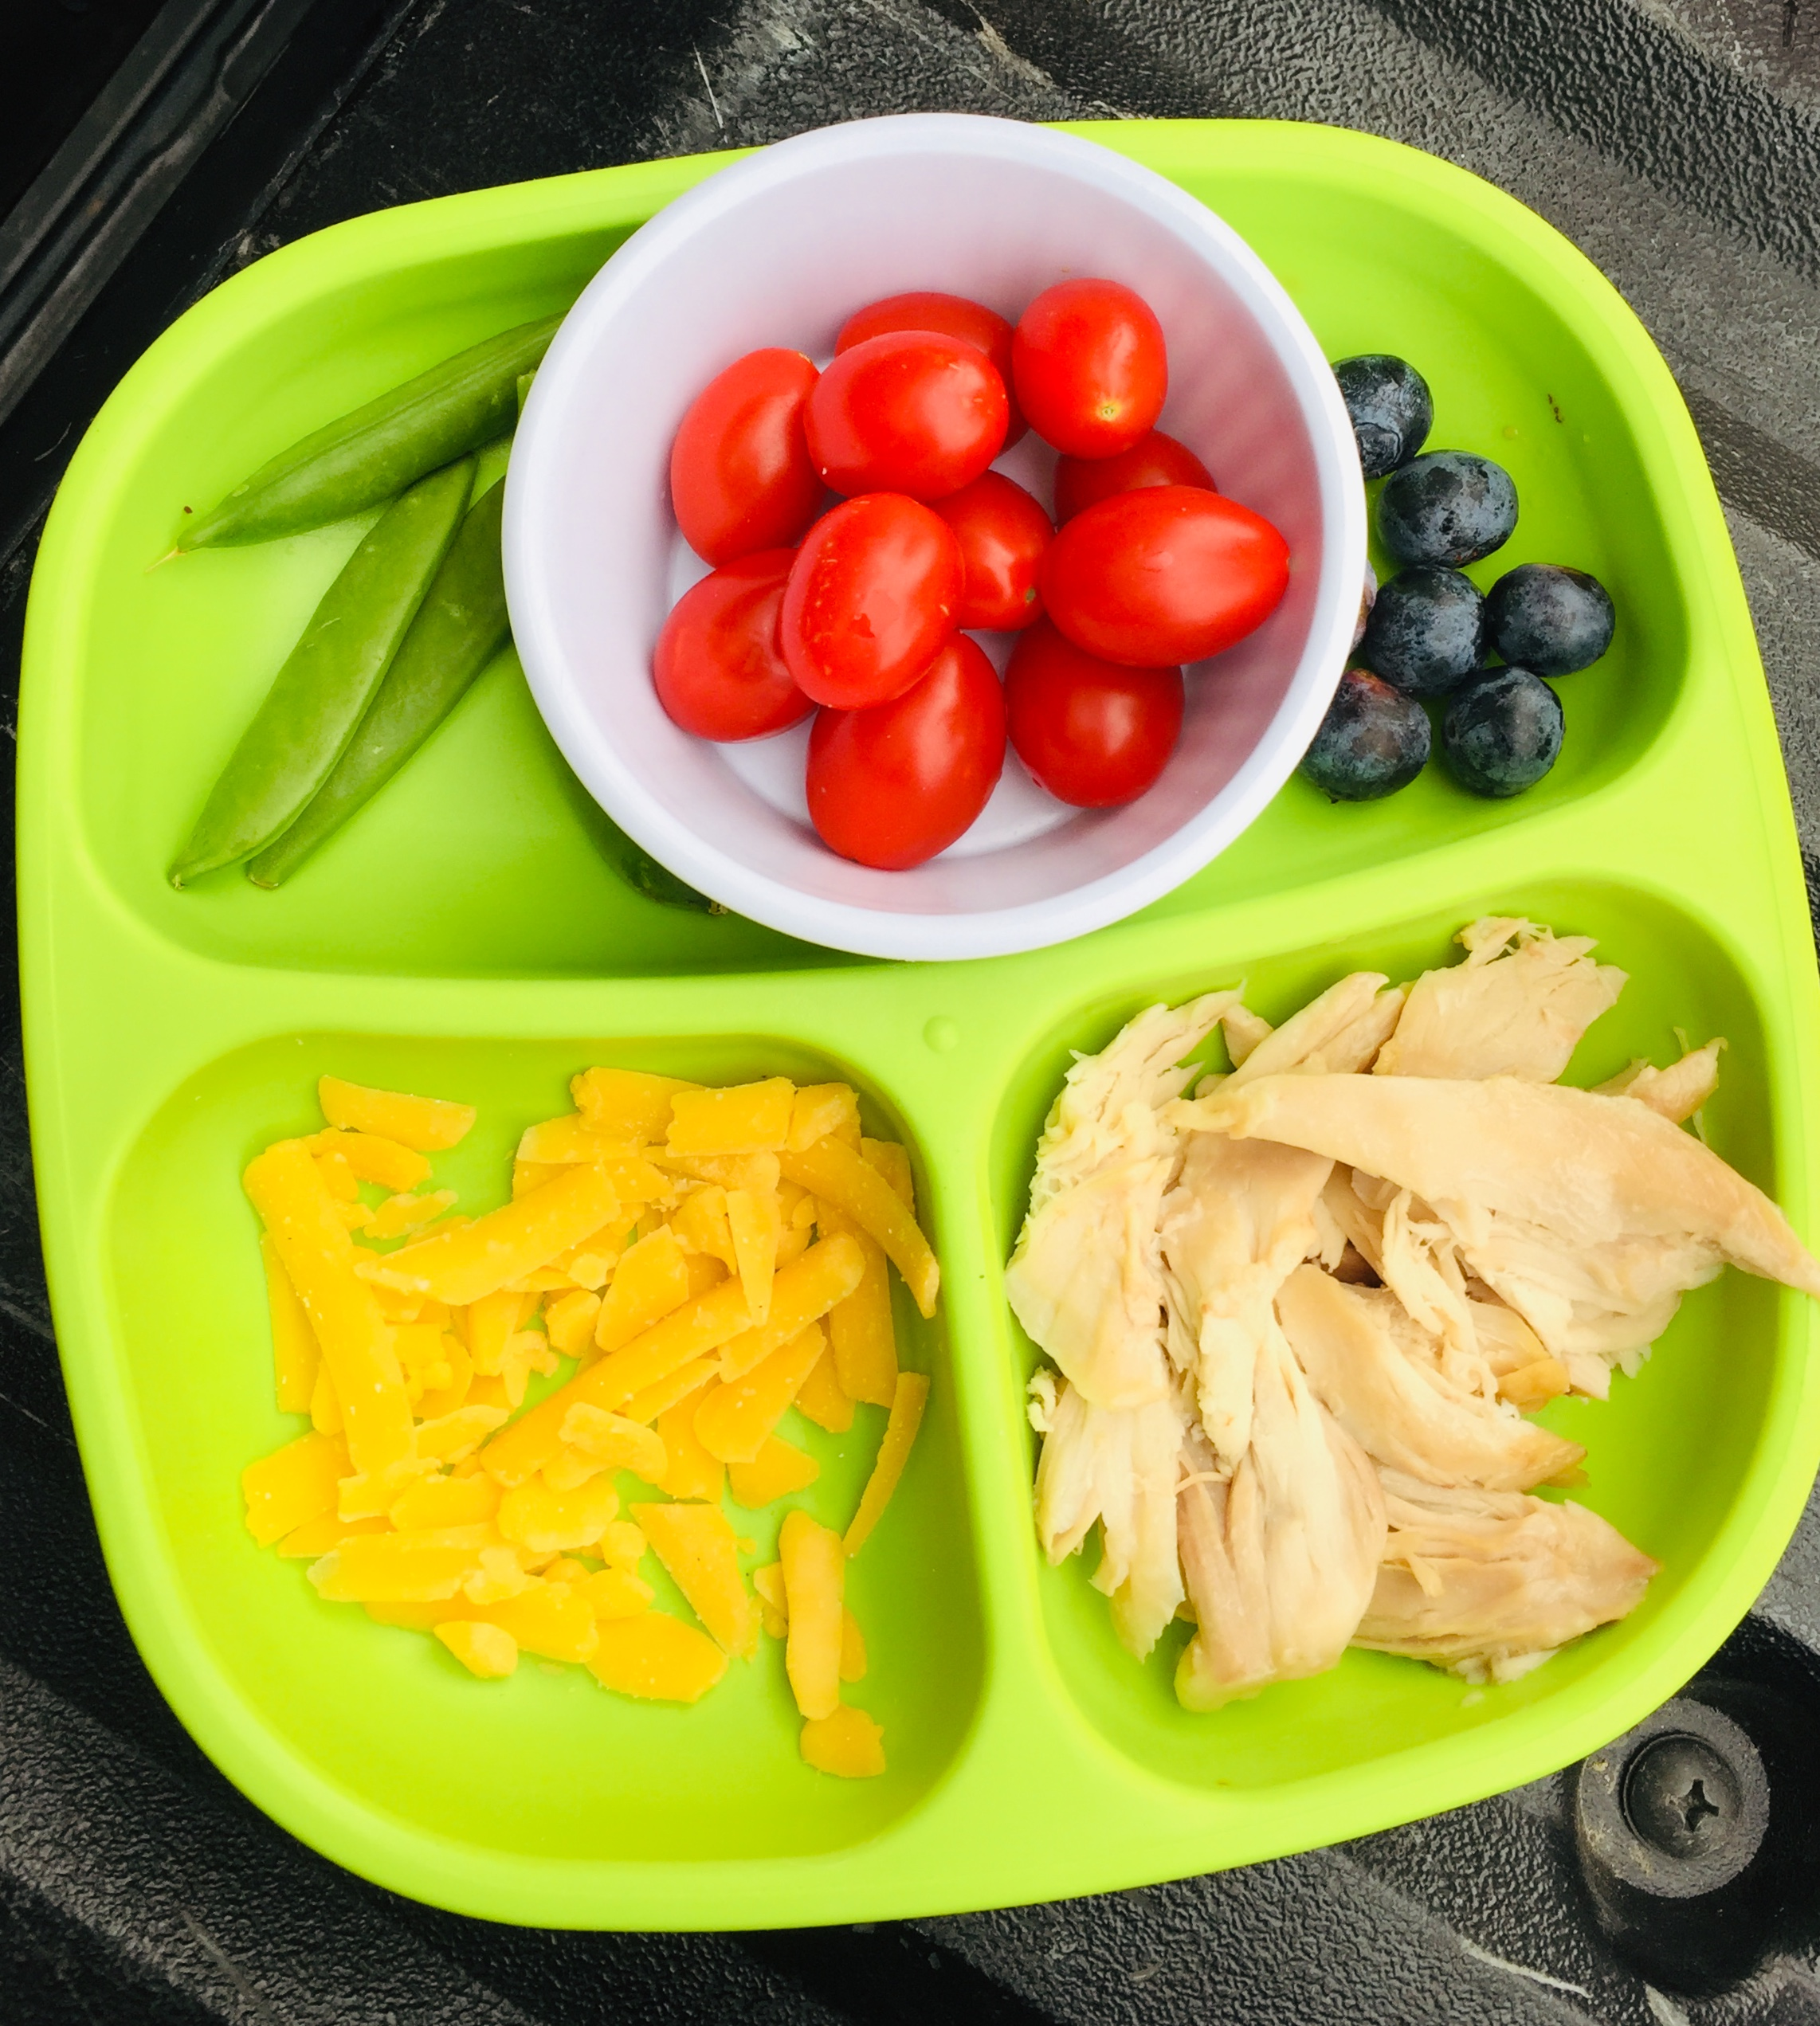 Snap peas, cherry tomatoes, blueberries, cheese and chicken.